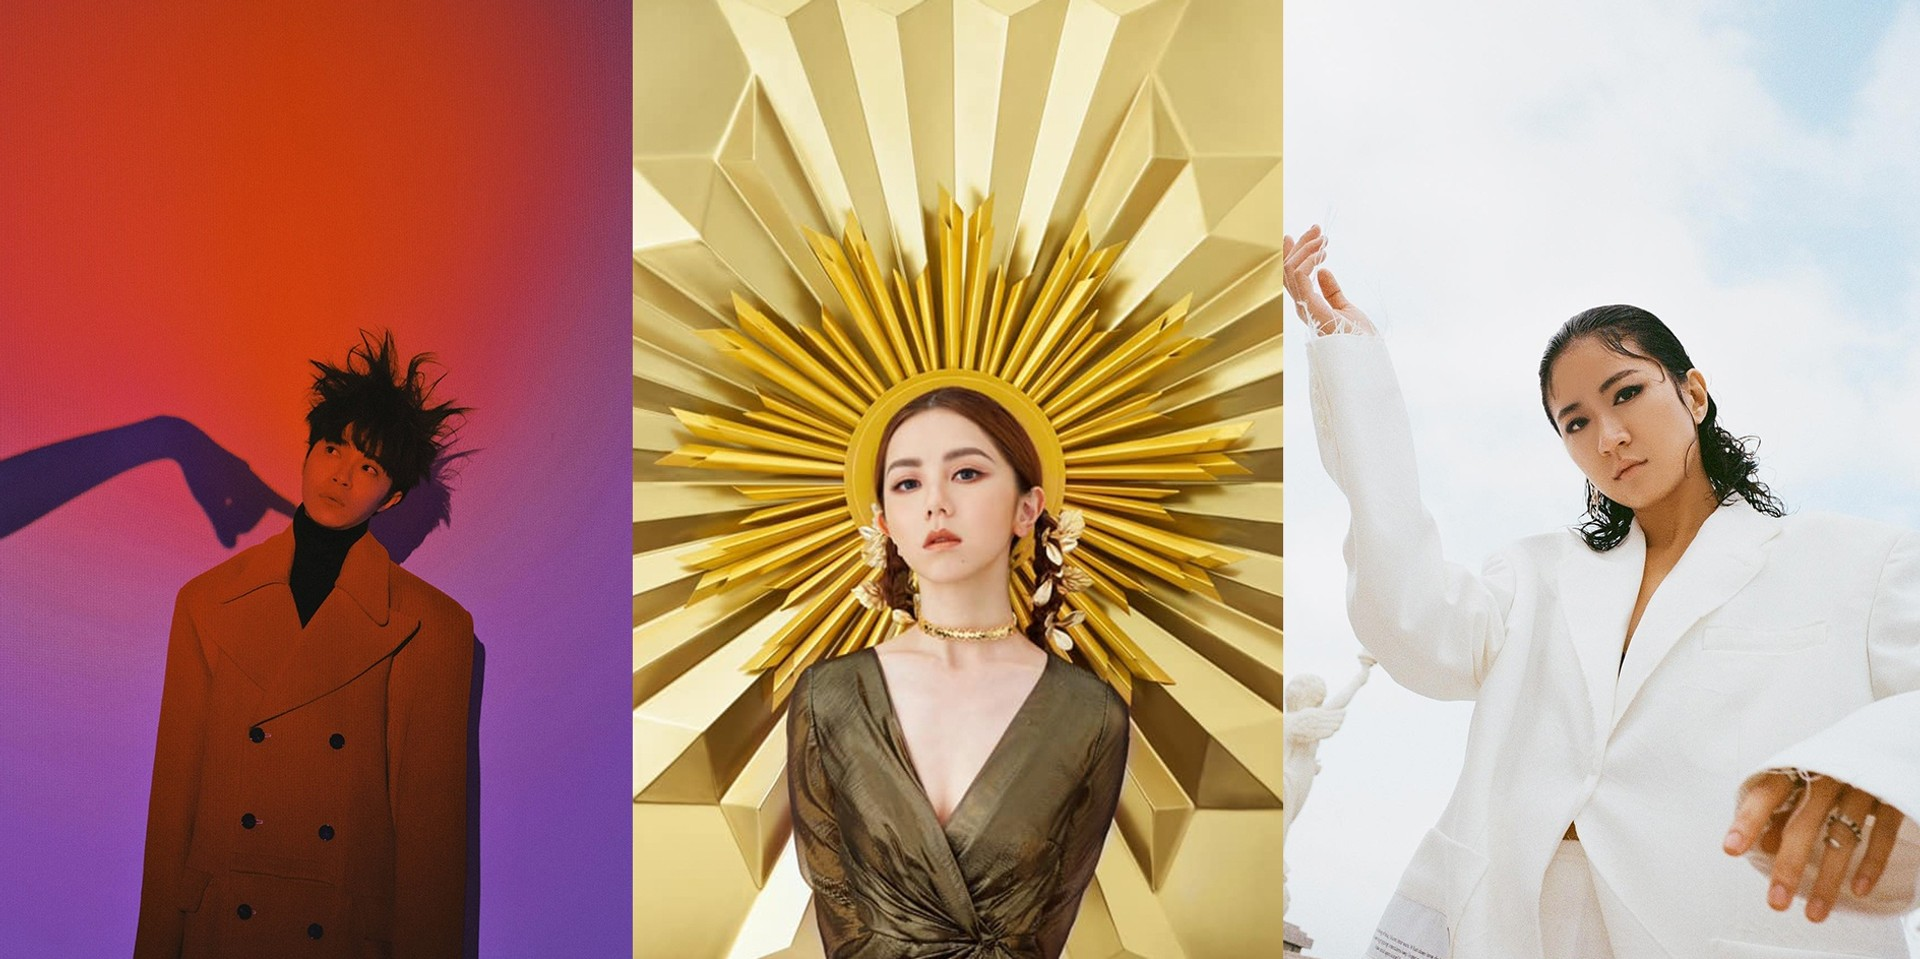 Wu Qing Feng, G.E.M., Namewee, 9m88, and more nominated for the 31st Golden Melody Awards